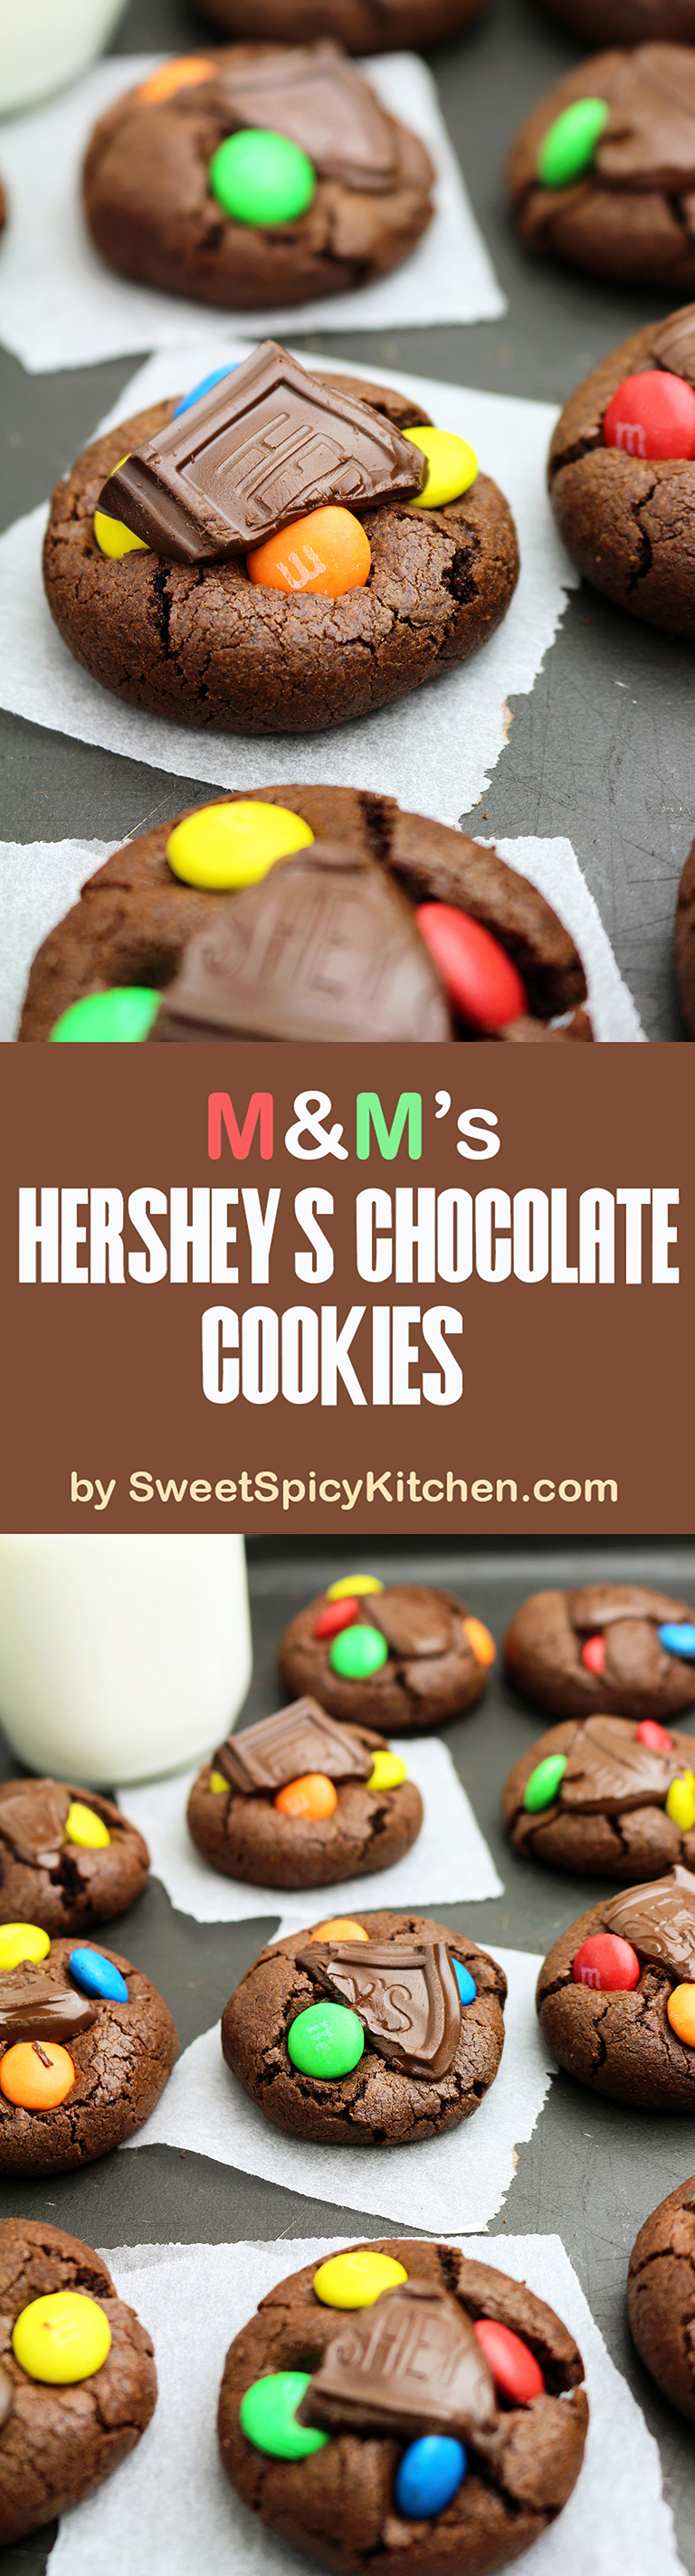 M&M's Hershey's Chocolate Cookies – super quick cookies for all chocolate, M&M and cookie fans. You will experience a real explosion of chocolate taste ♥